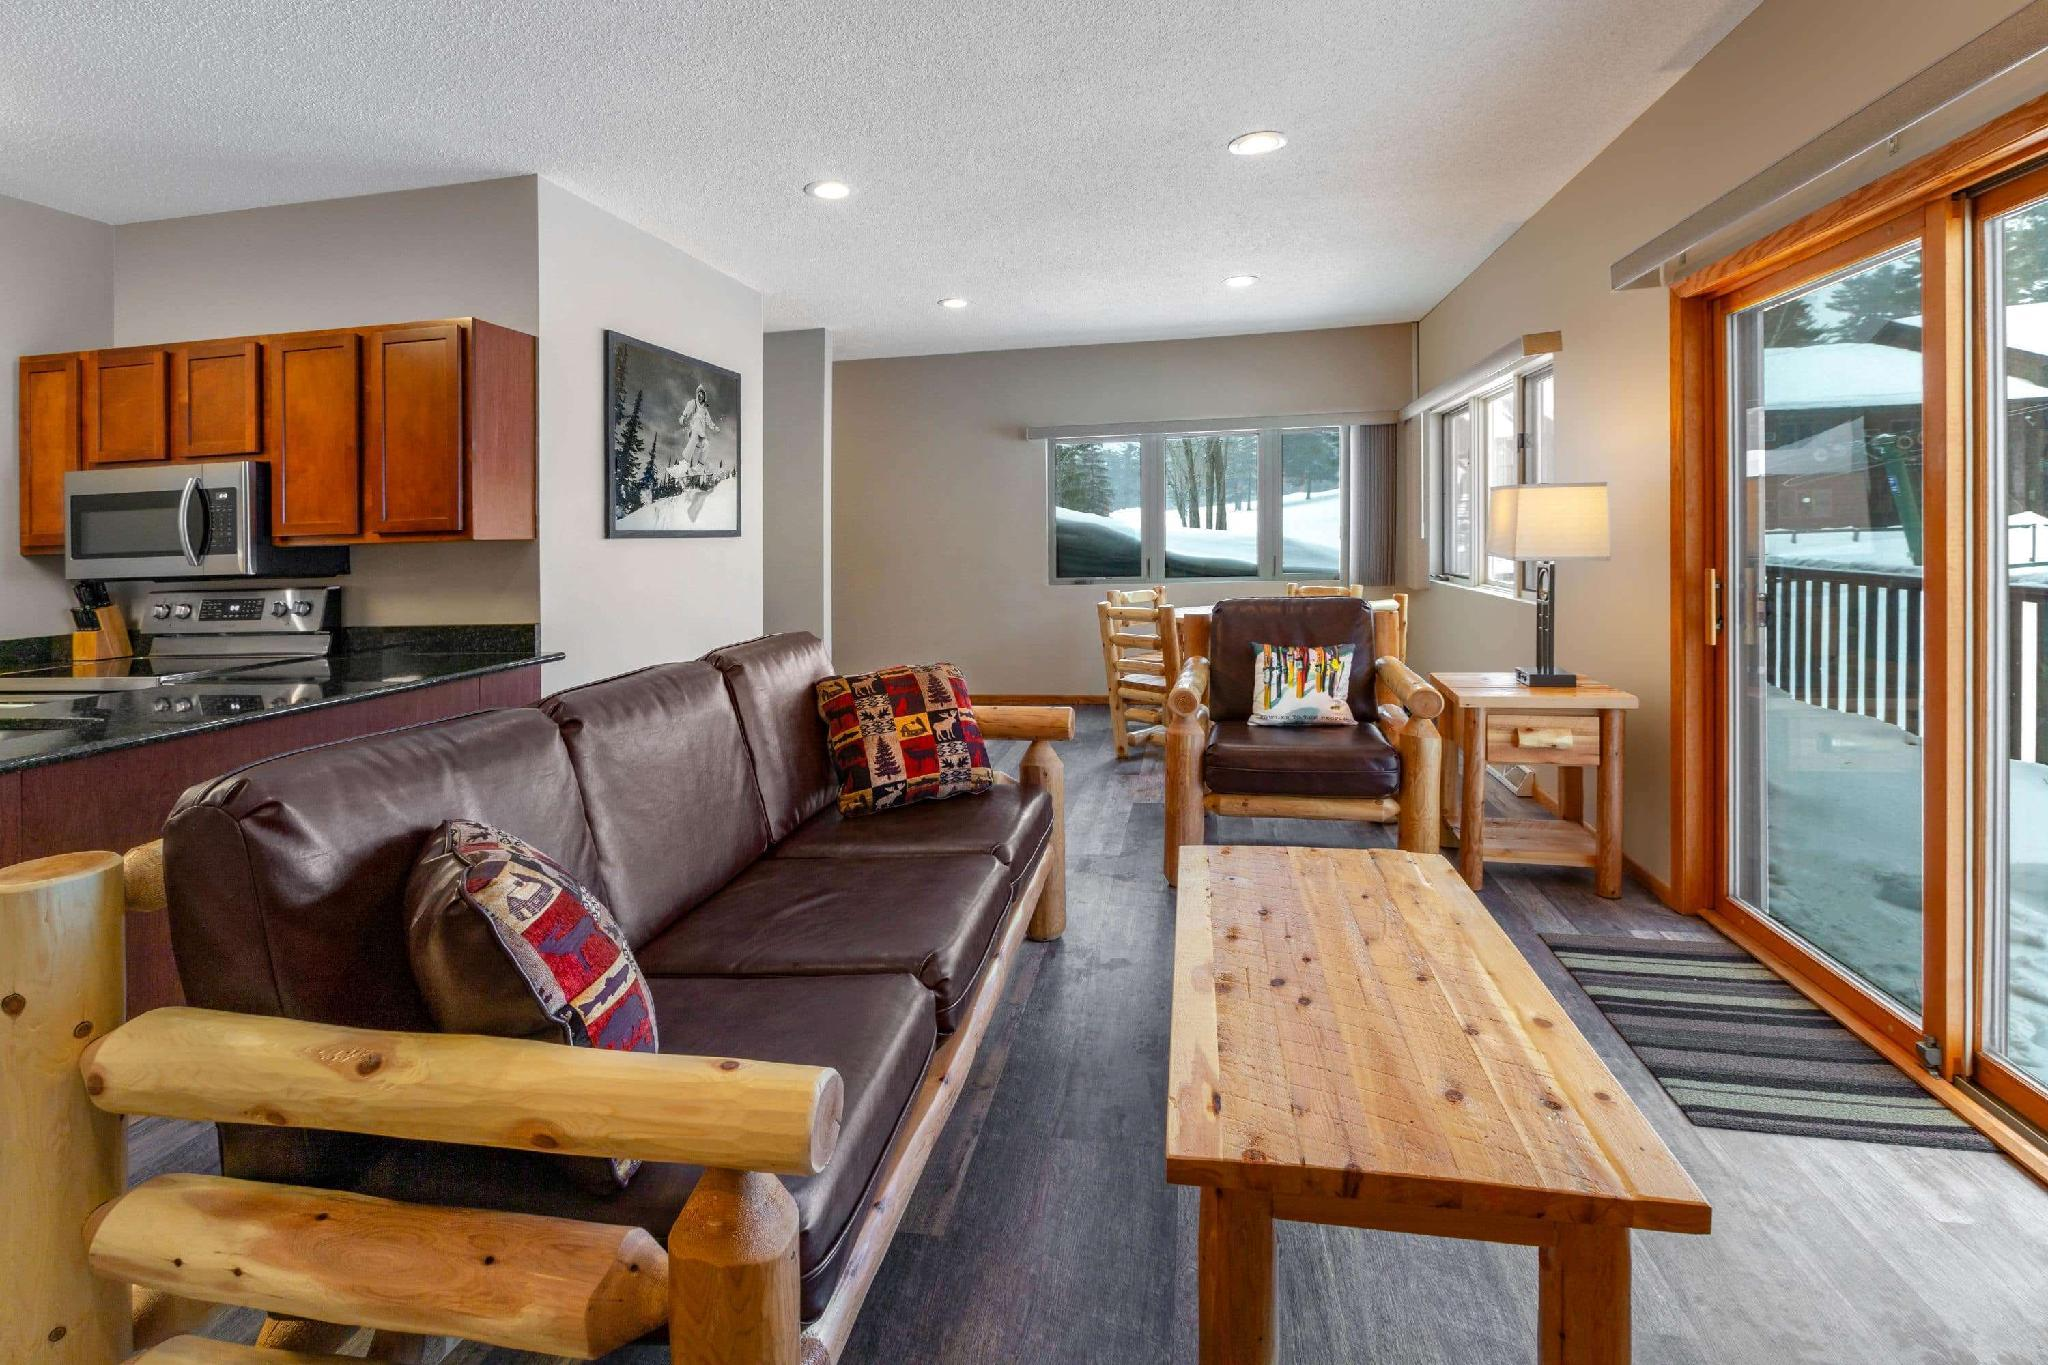 1 King Bed and 2 Double Beds, Two-Bedroom, Mountain Haus Suite, Non-Smoking